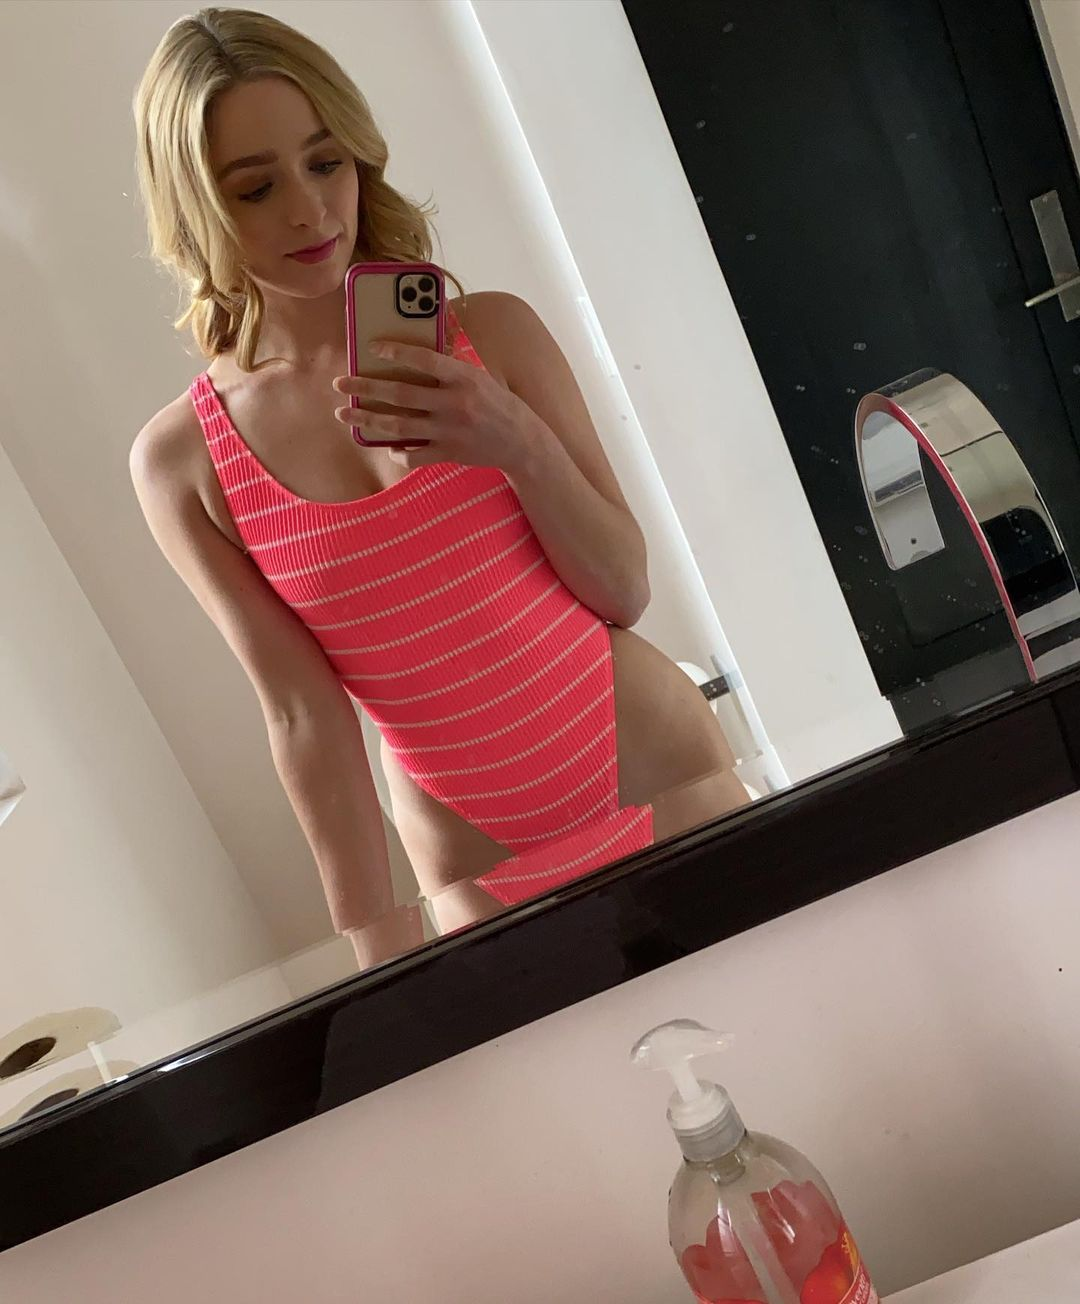 Greer Grammer Sexy In Swimsuit